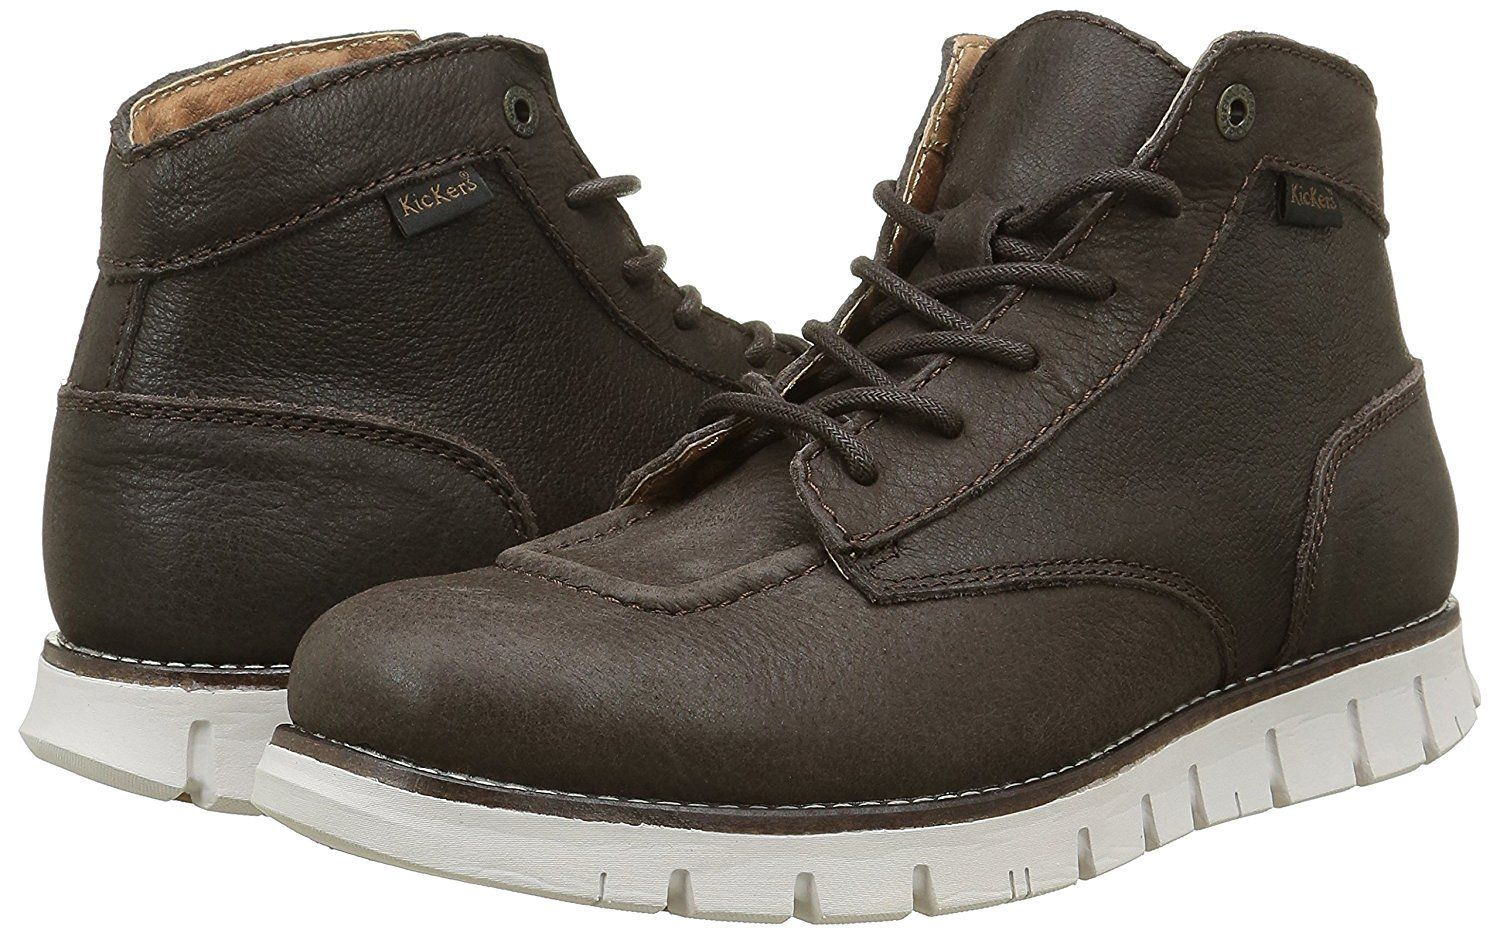 a171b2ed35f23 Kickers Men's Kicklegendsport Ankle Boots: Amazon.co.uk: Shoes ...